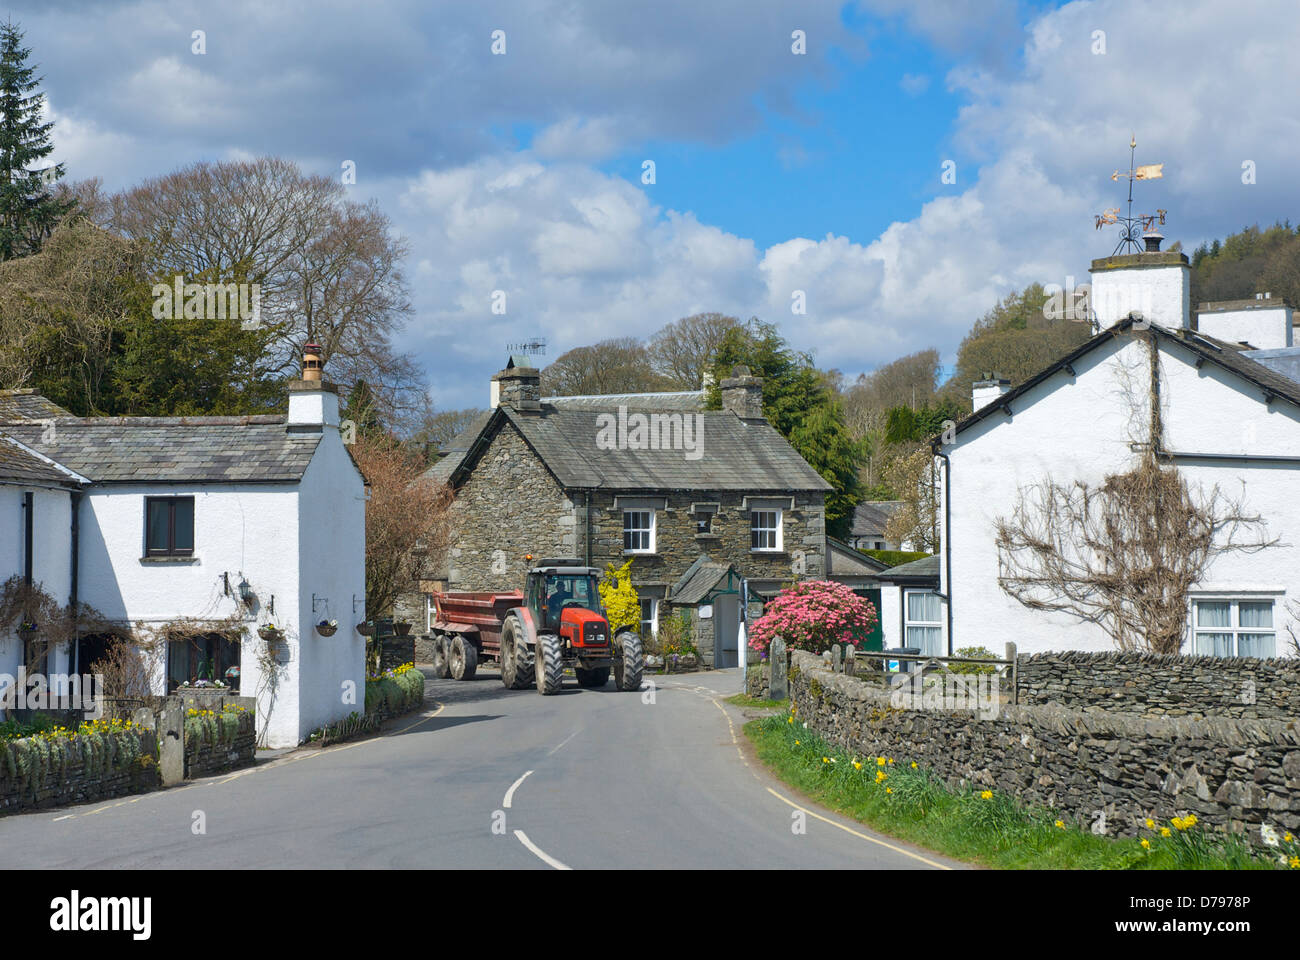 Tractor and trailer in the village of Near Sawrey, Lake District National Park, Cumbria, England UK - Stock Image